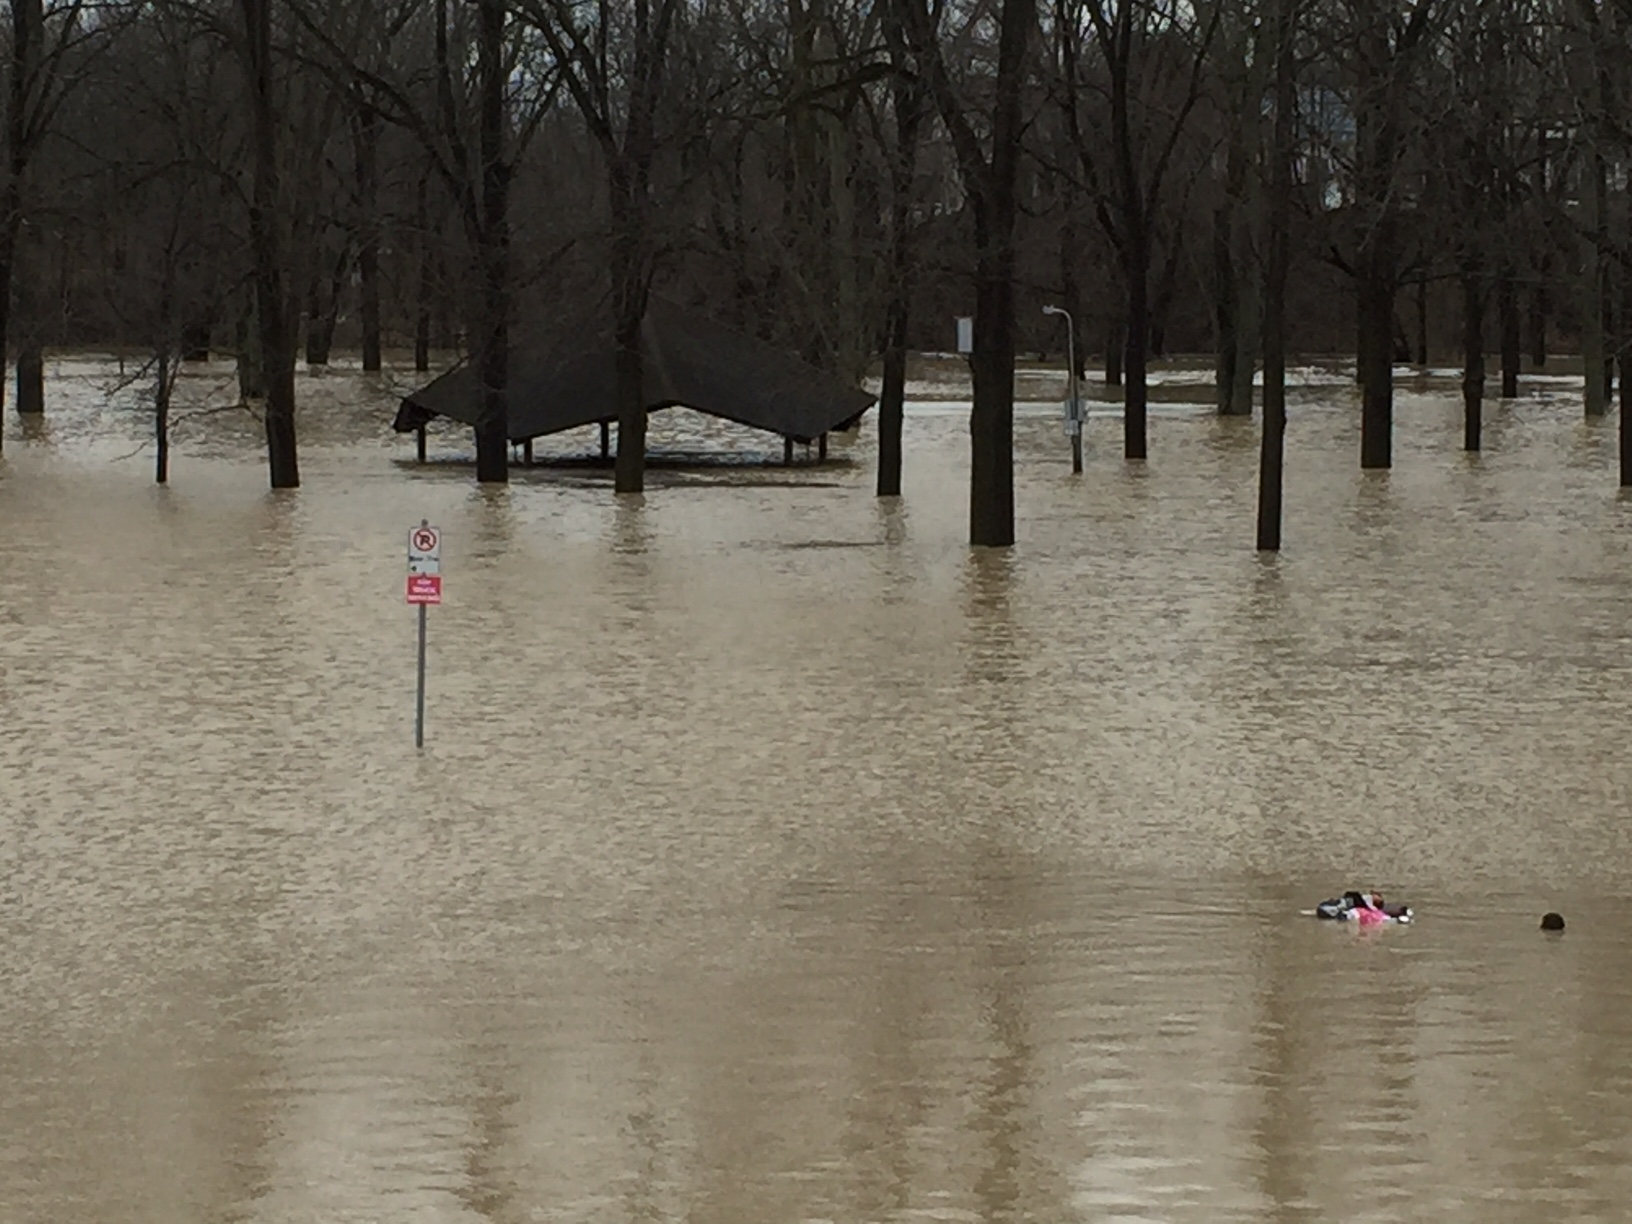 An End To Flooding Concerns For Wallaceburg Area